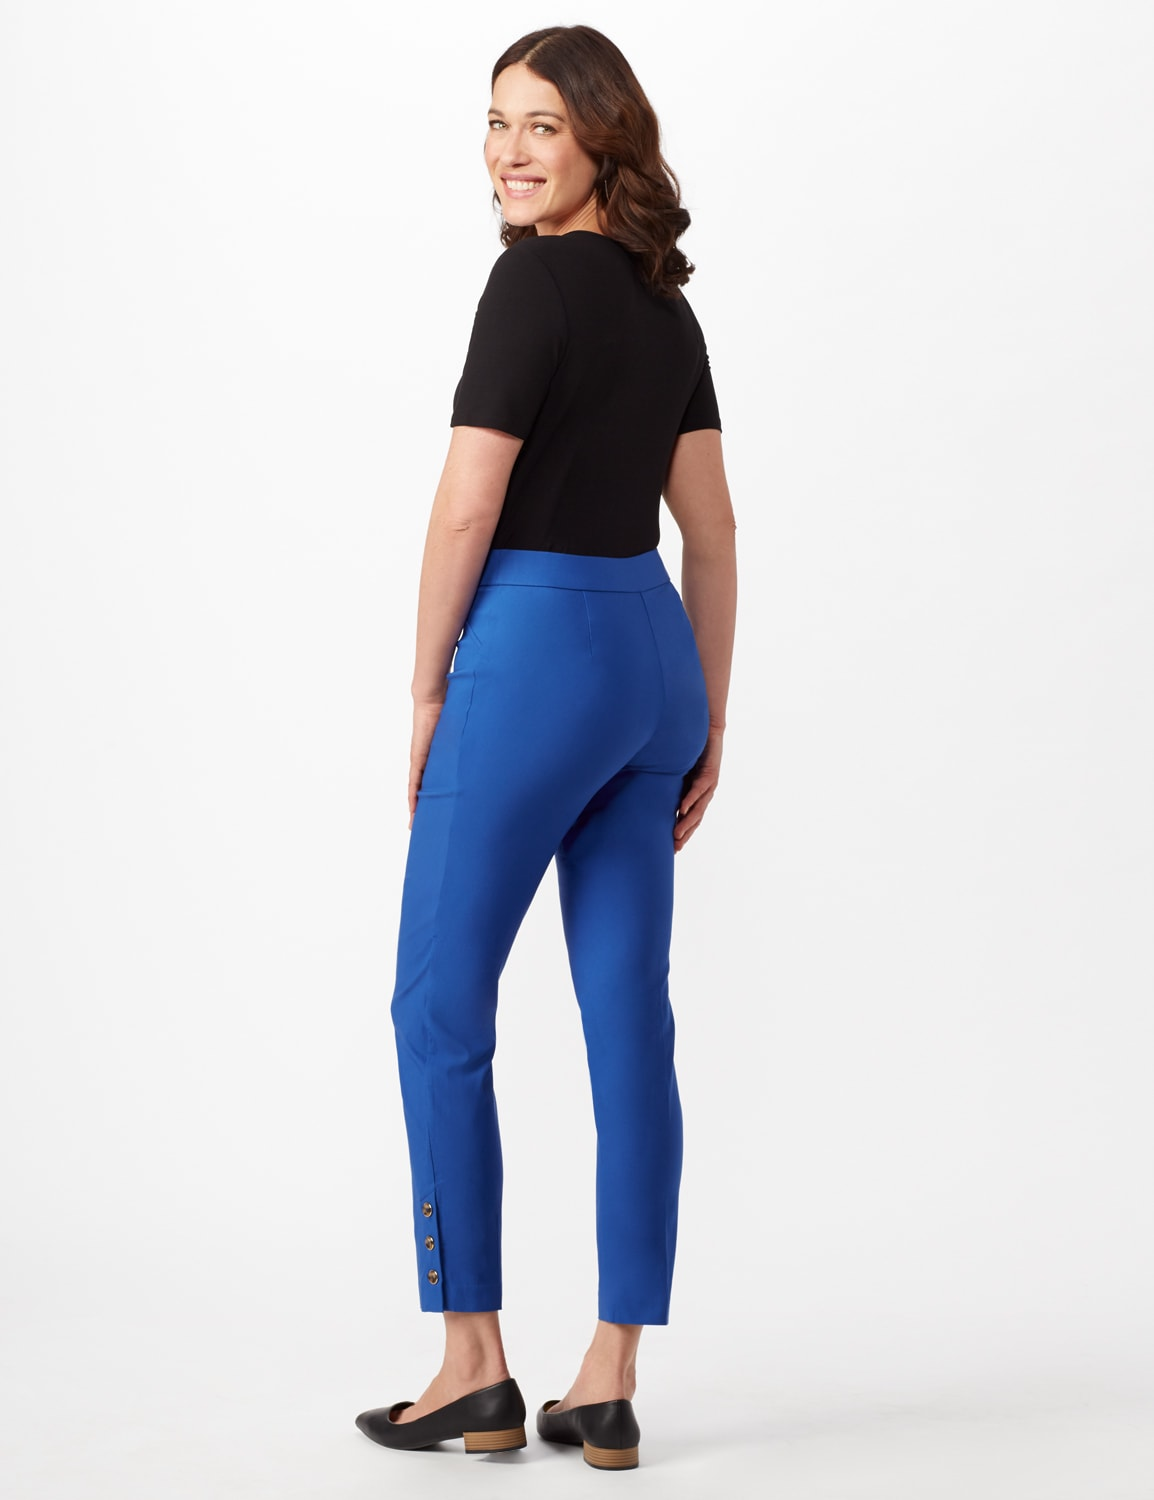 Tortoise Shell Button Ankle Pants - Royal - Back